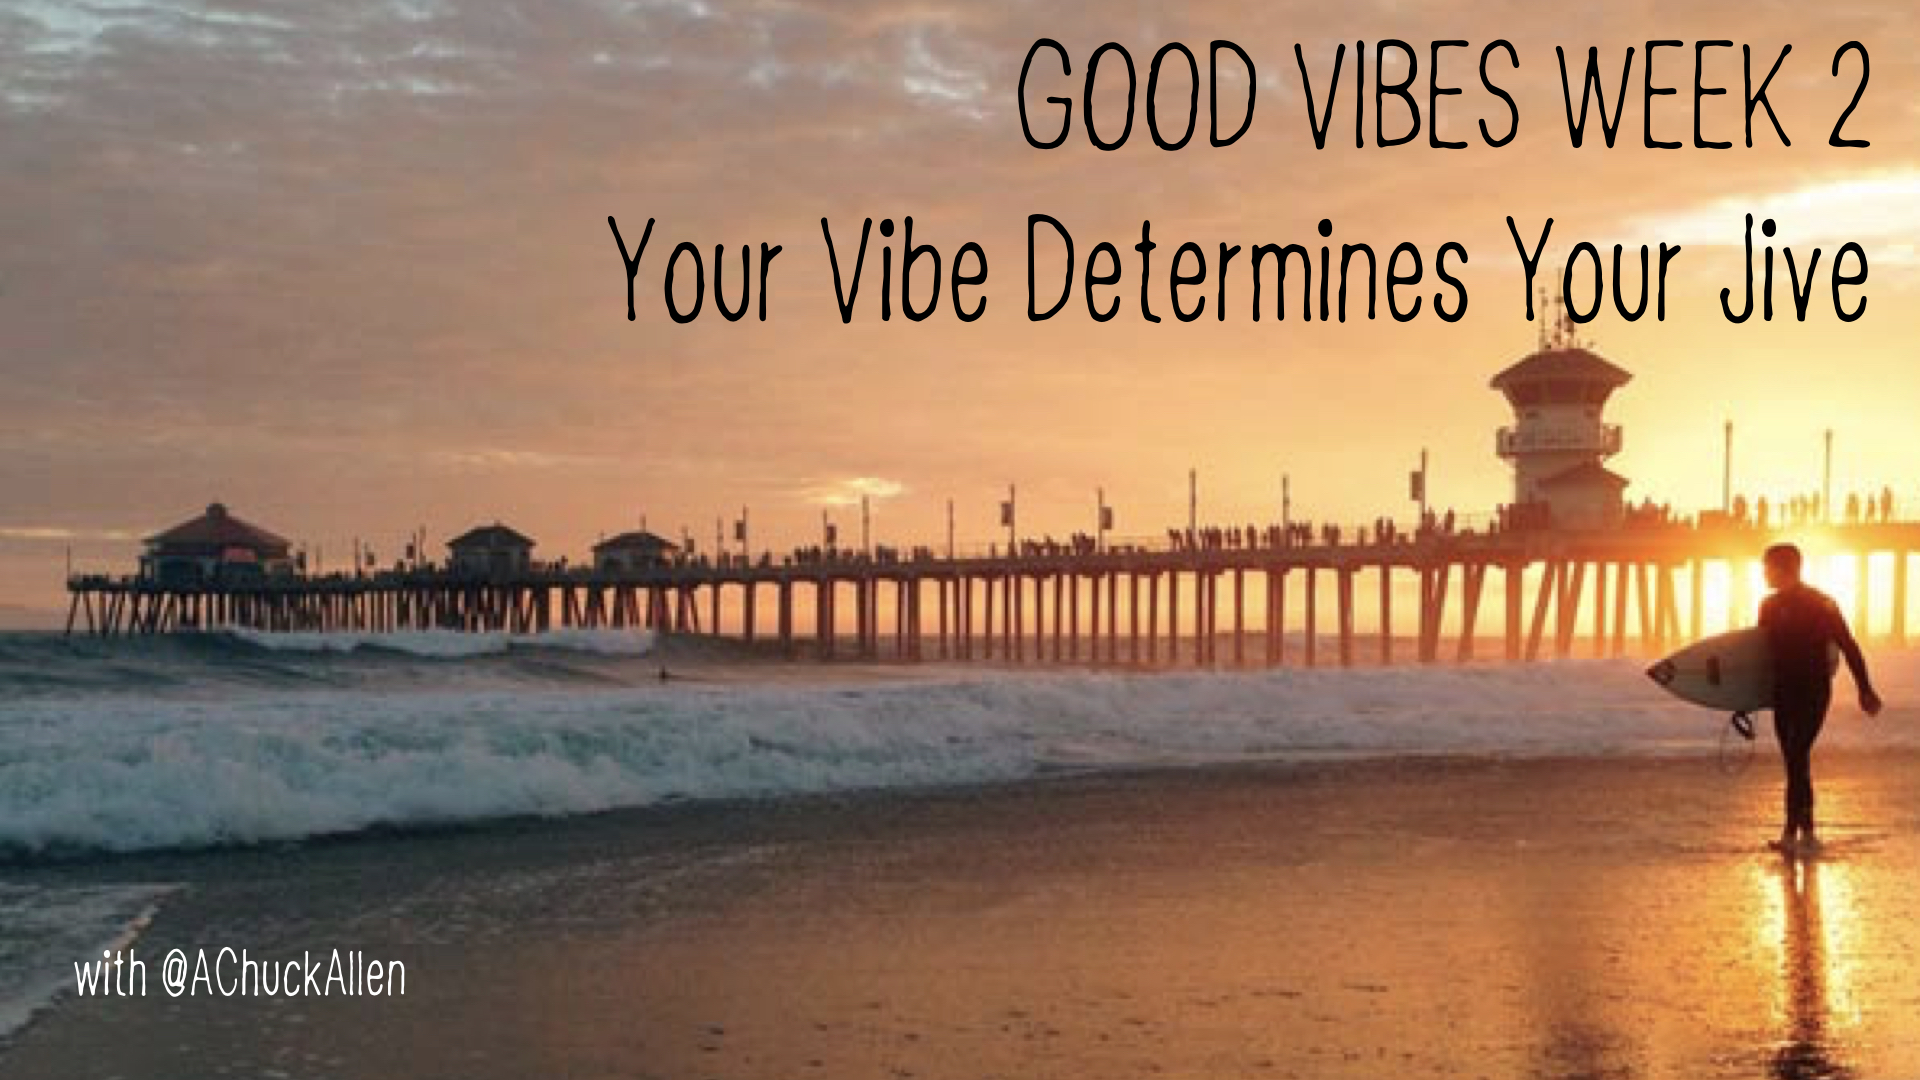 Your Vibe Determines Your Jive Image